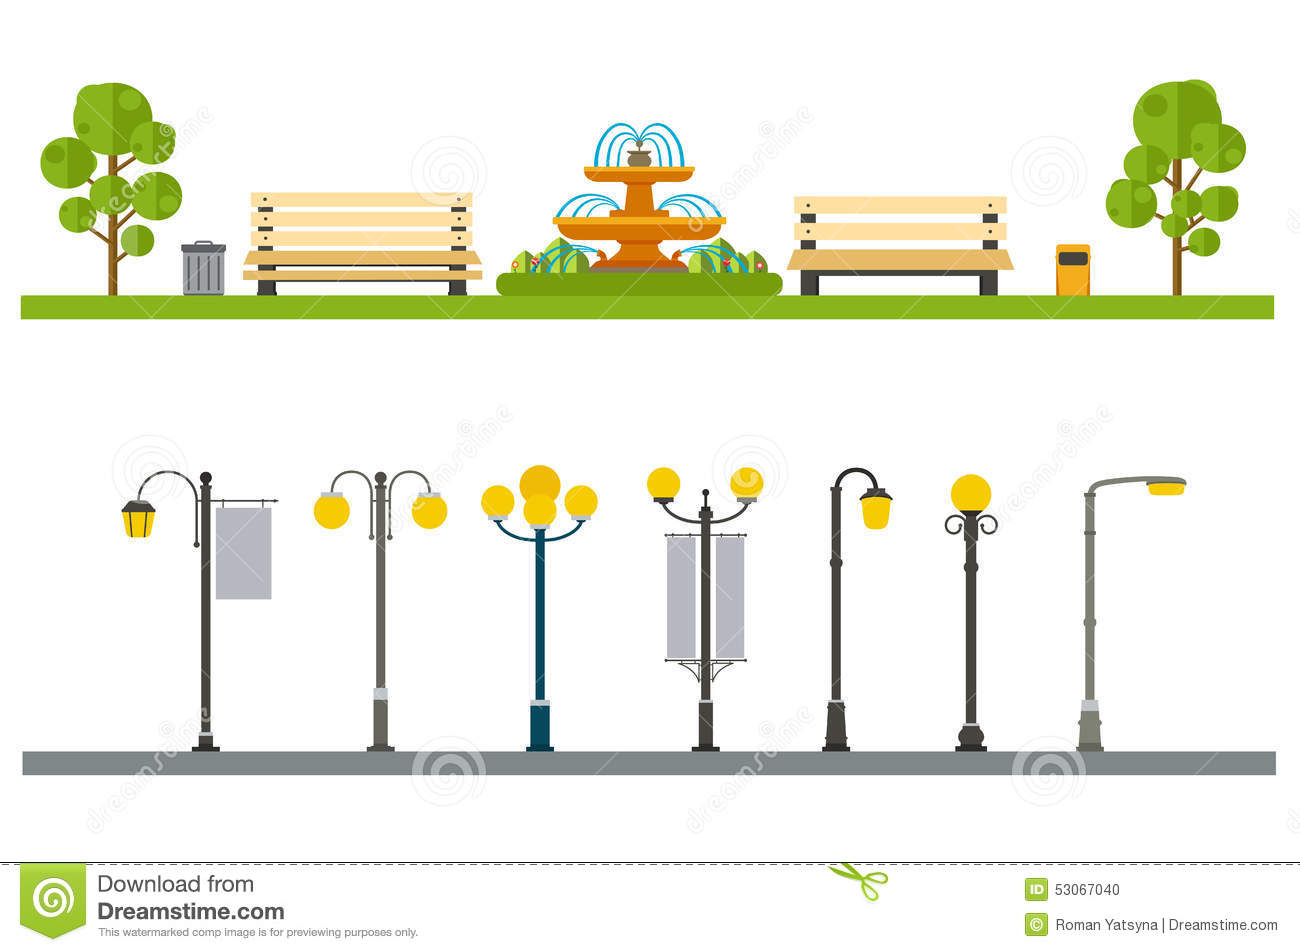 Urban outdoor decor, elements parks and alleys, streets and side